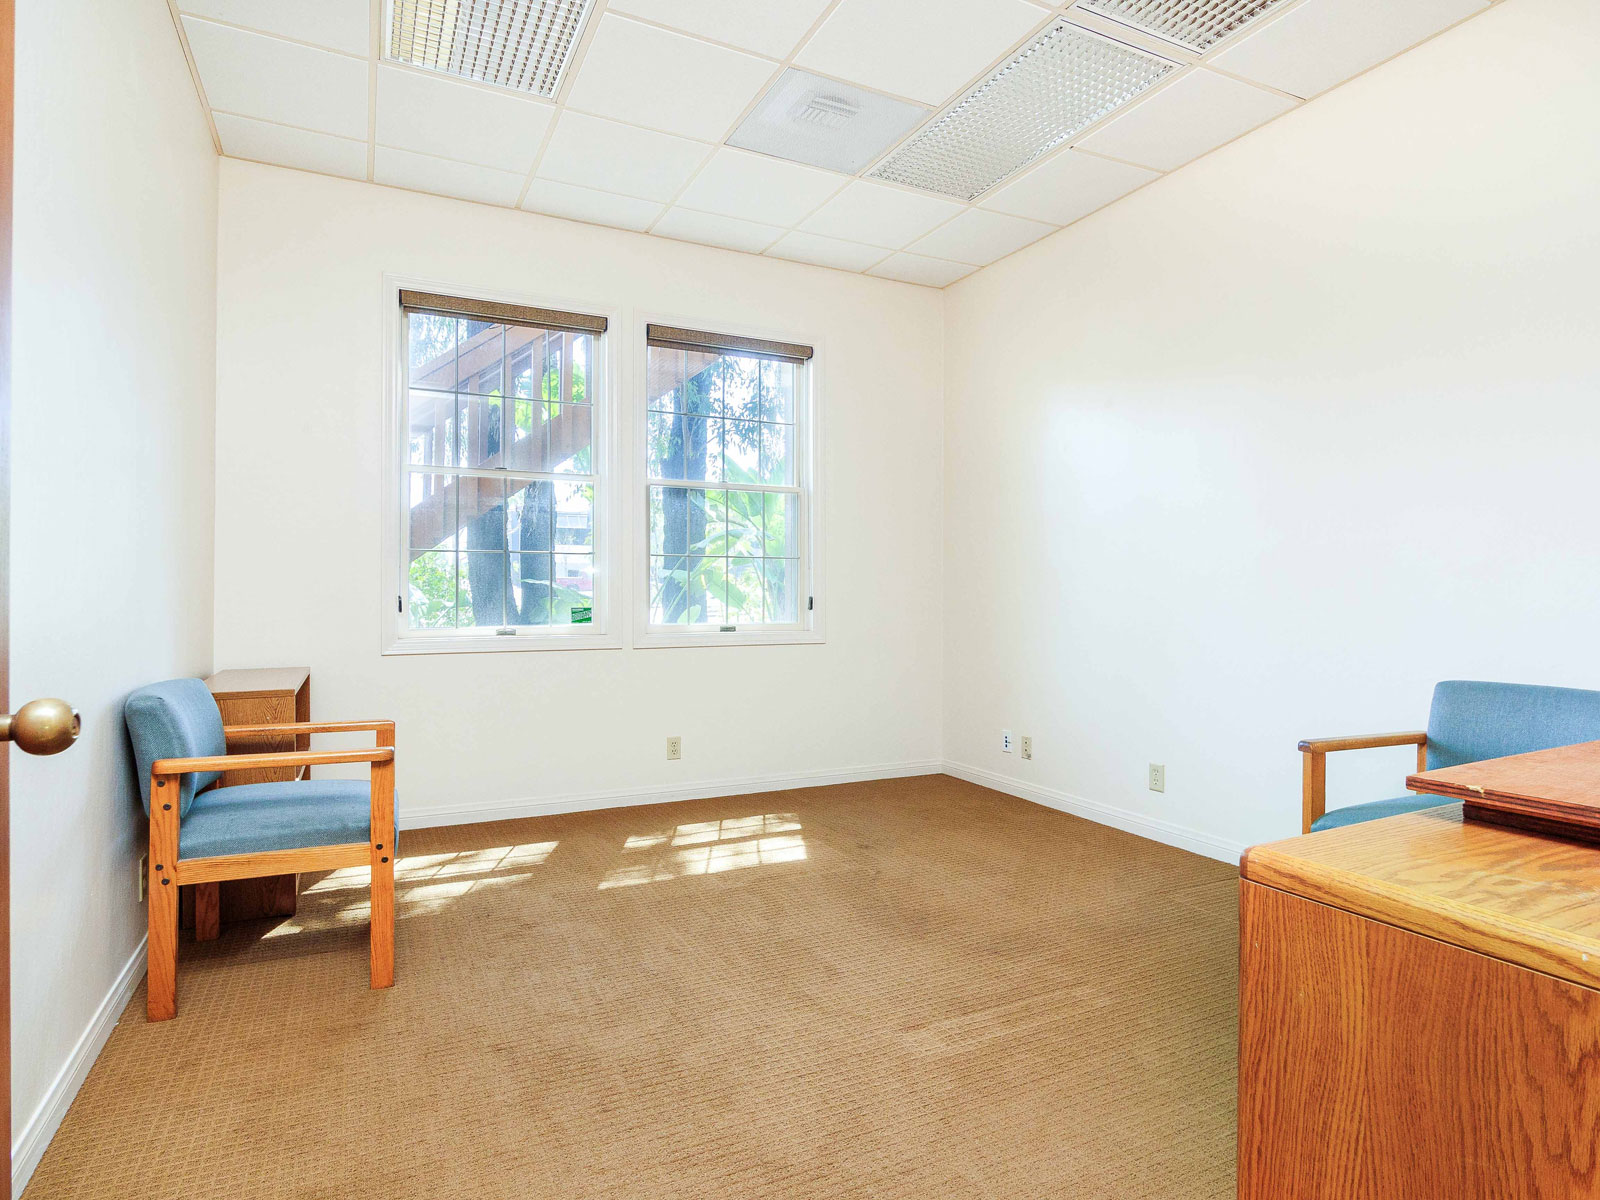 316-s-melrose-vista-ca-executive-office-for-lease-104-1